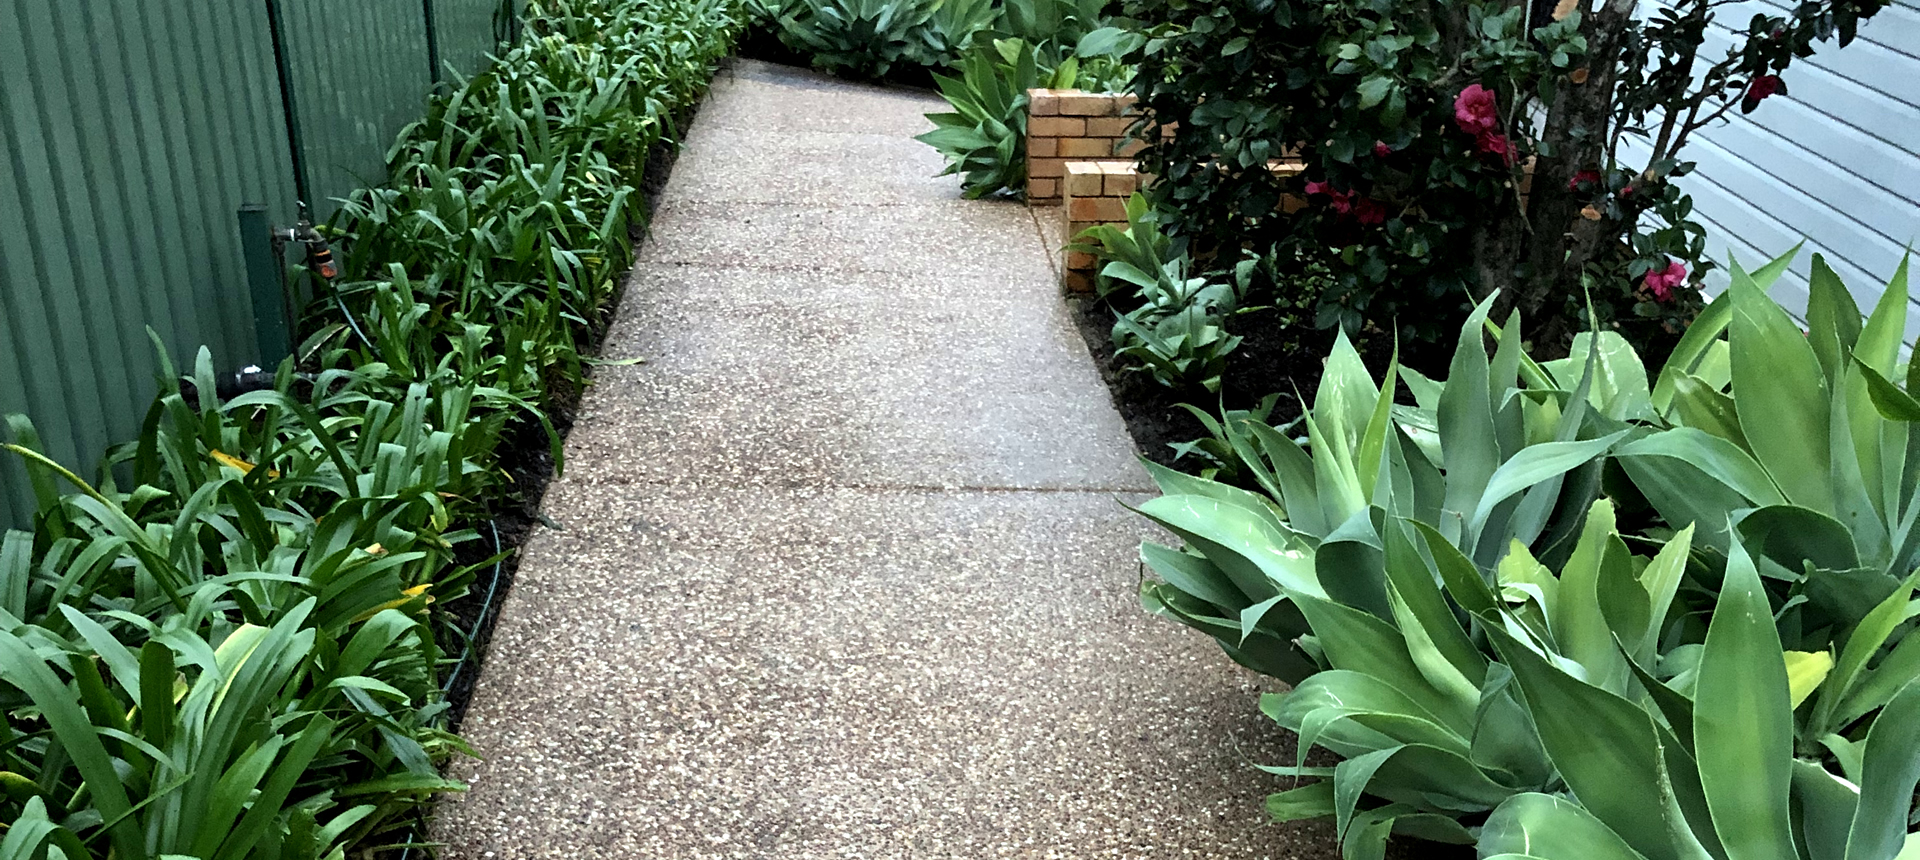 Residential Pressure Washing Clean Path After